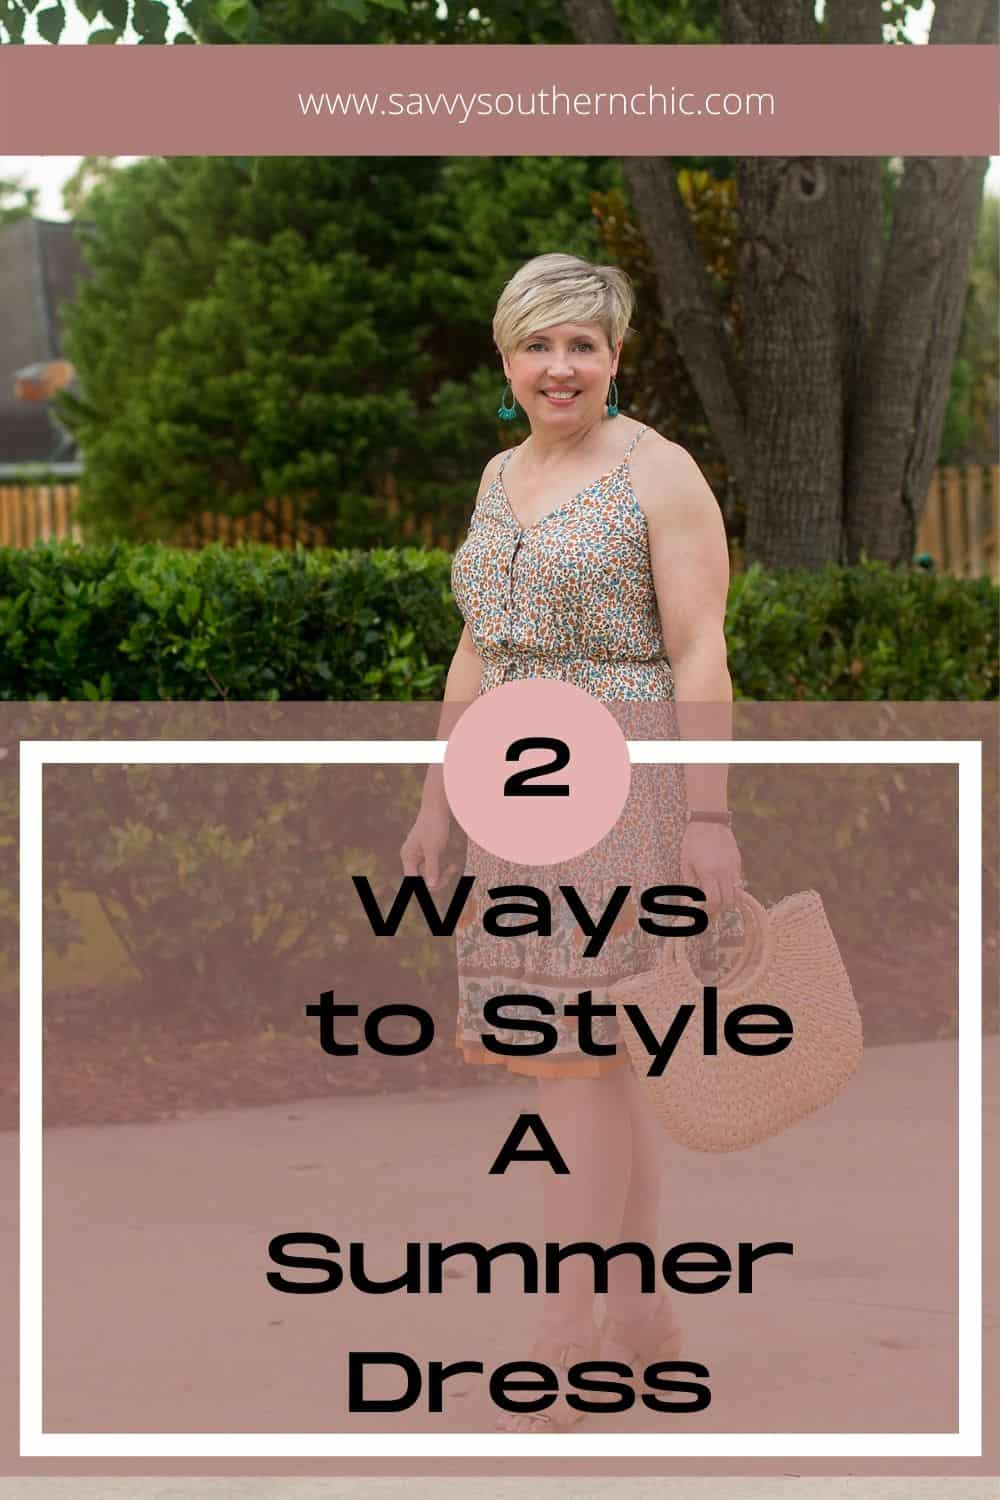 2 ways to style a summer dress